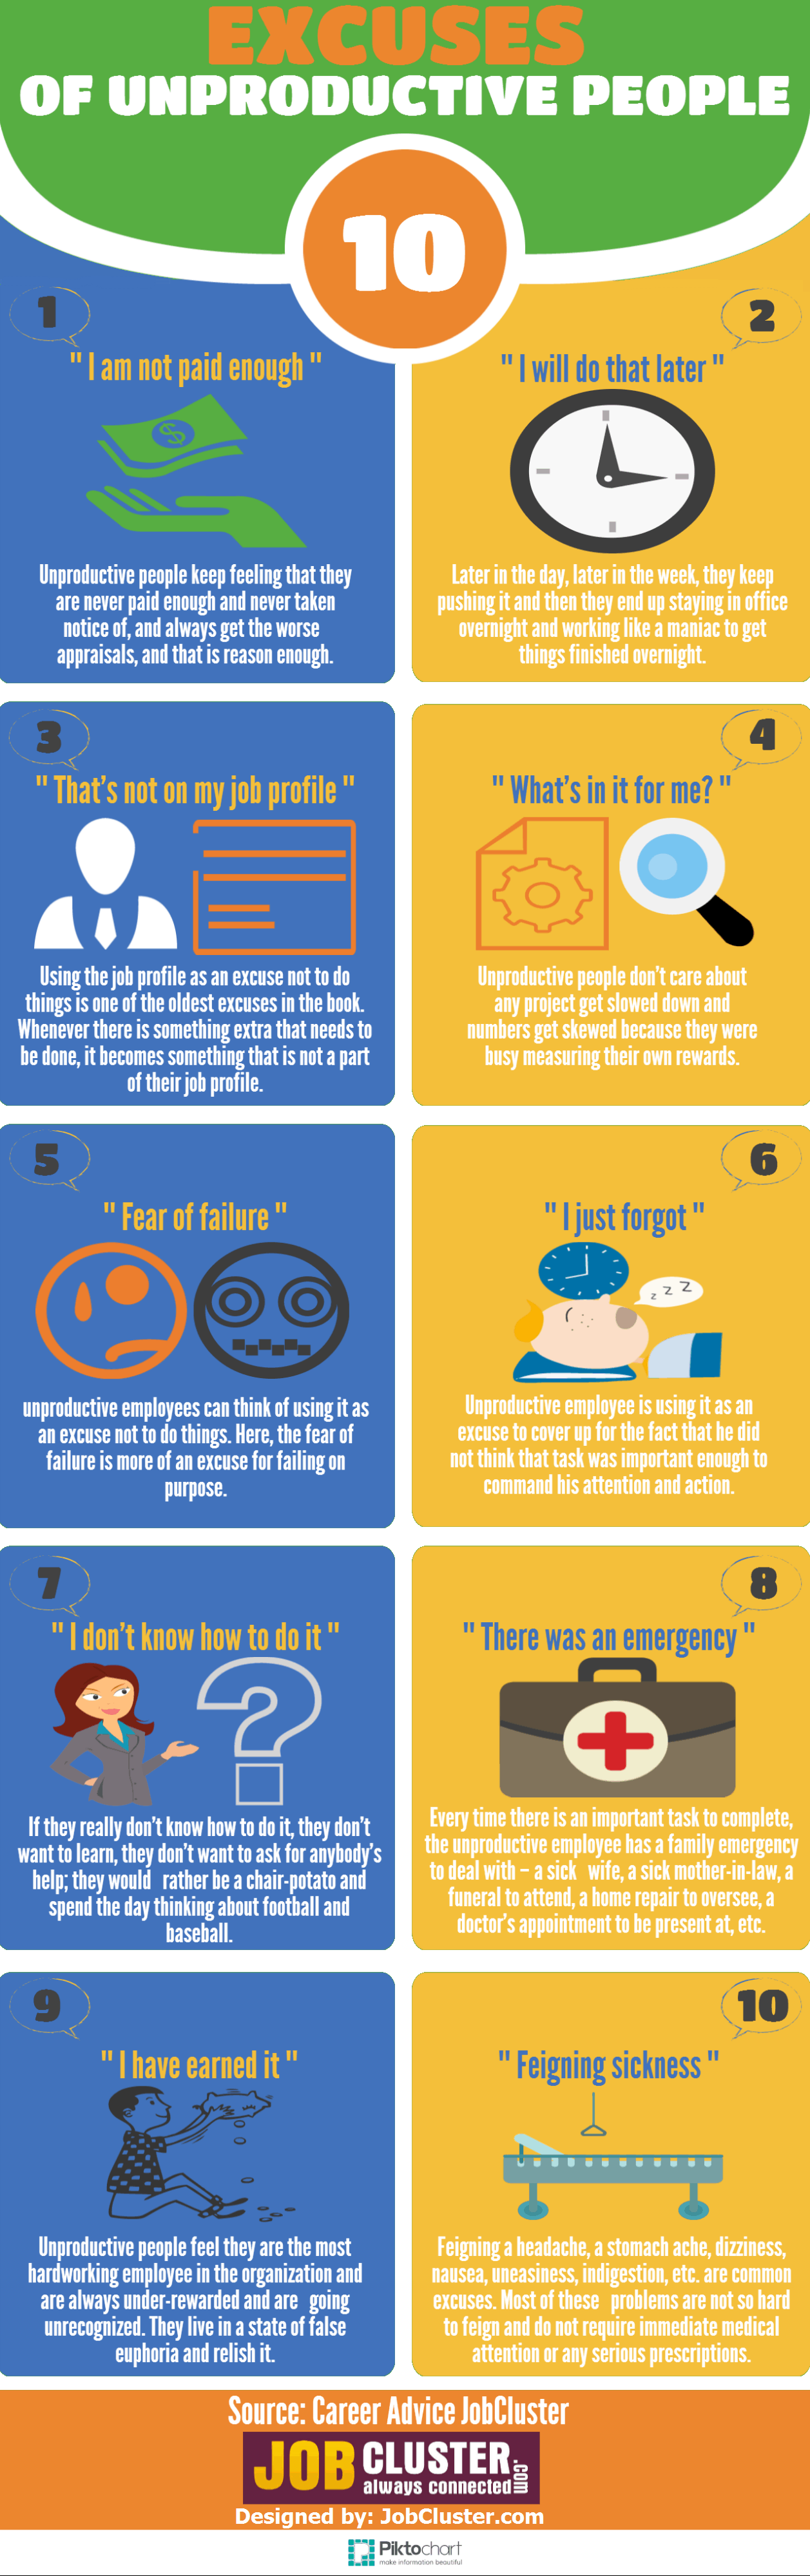 10-Excuses-of-unproductive-people-Infographic (1)